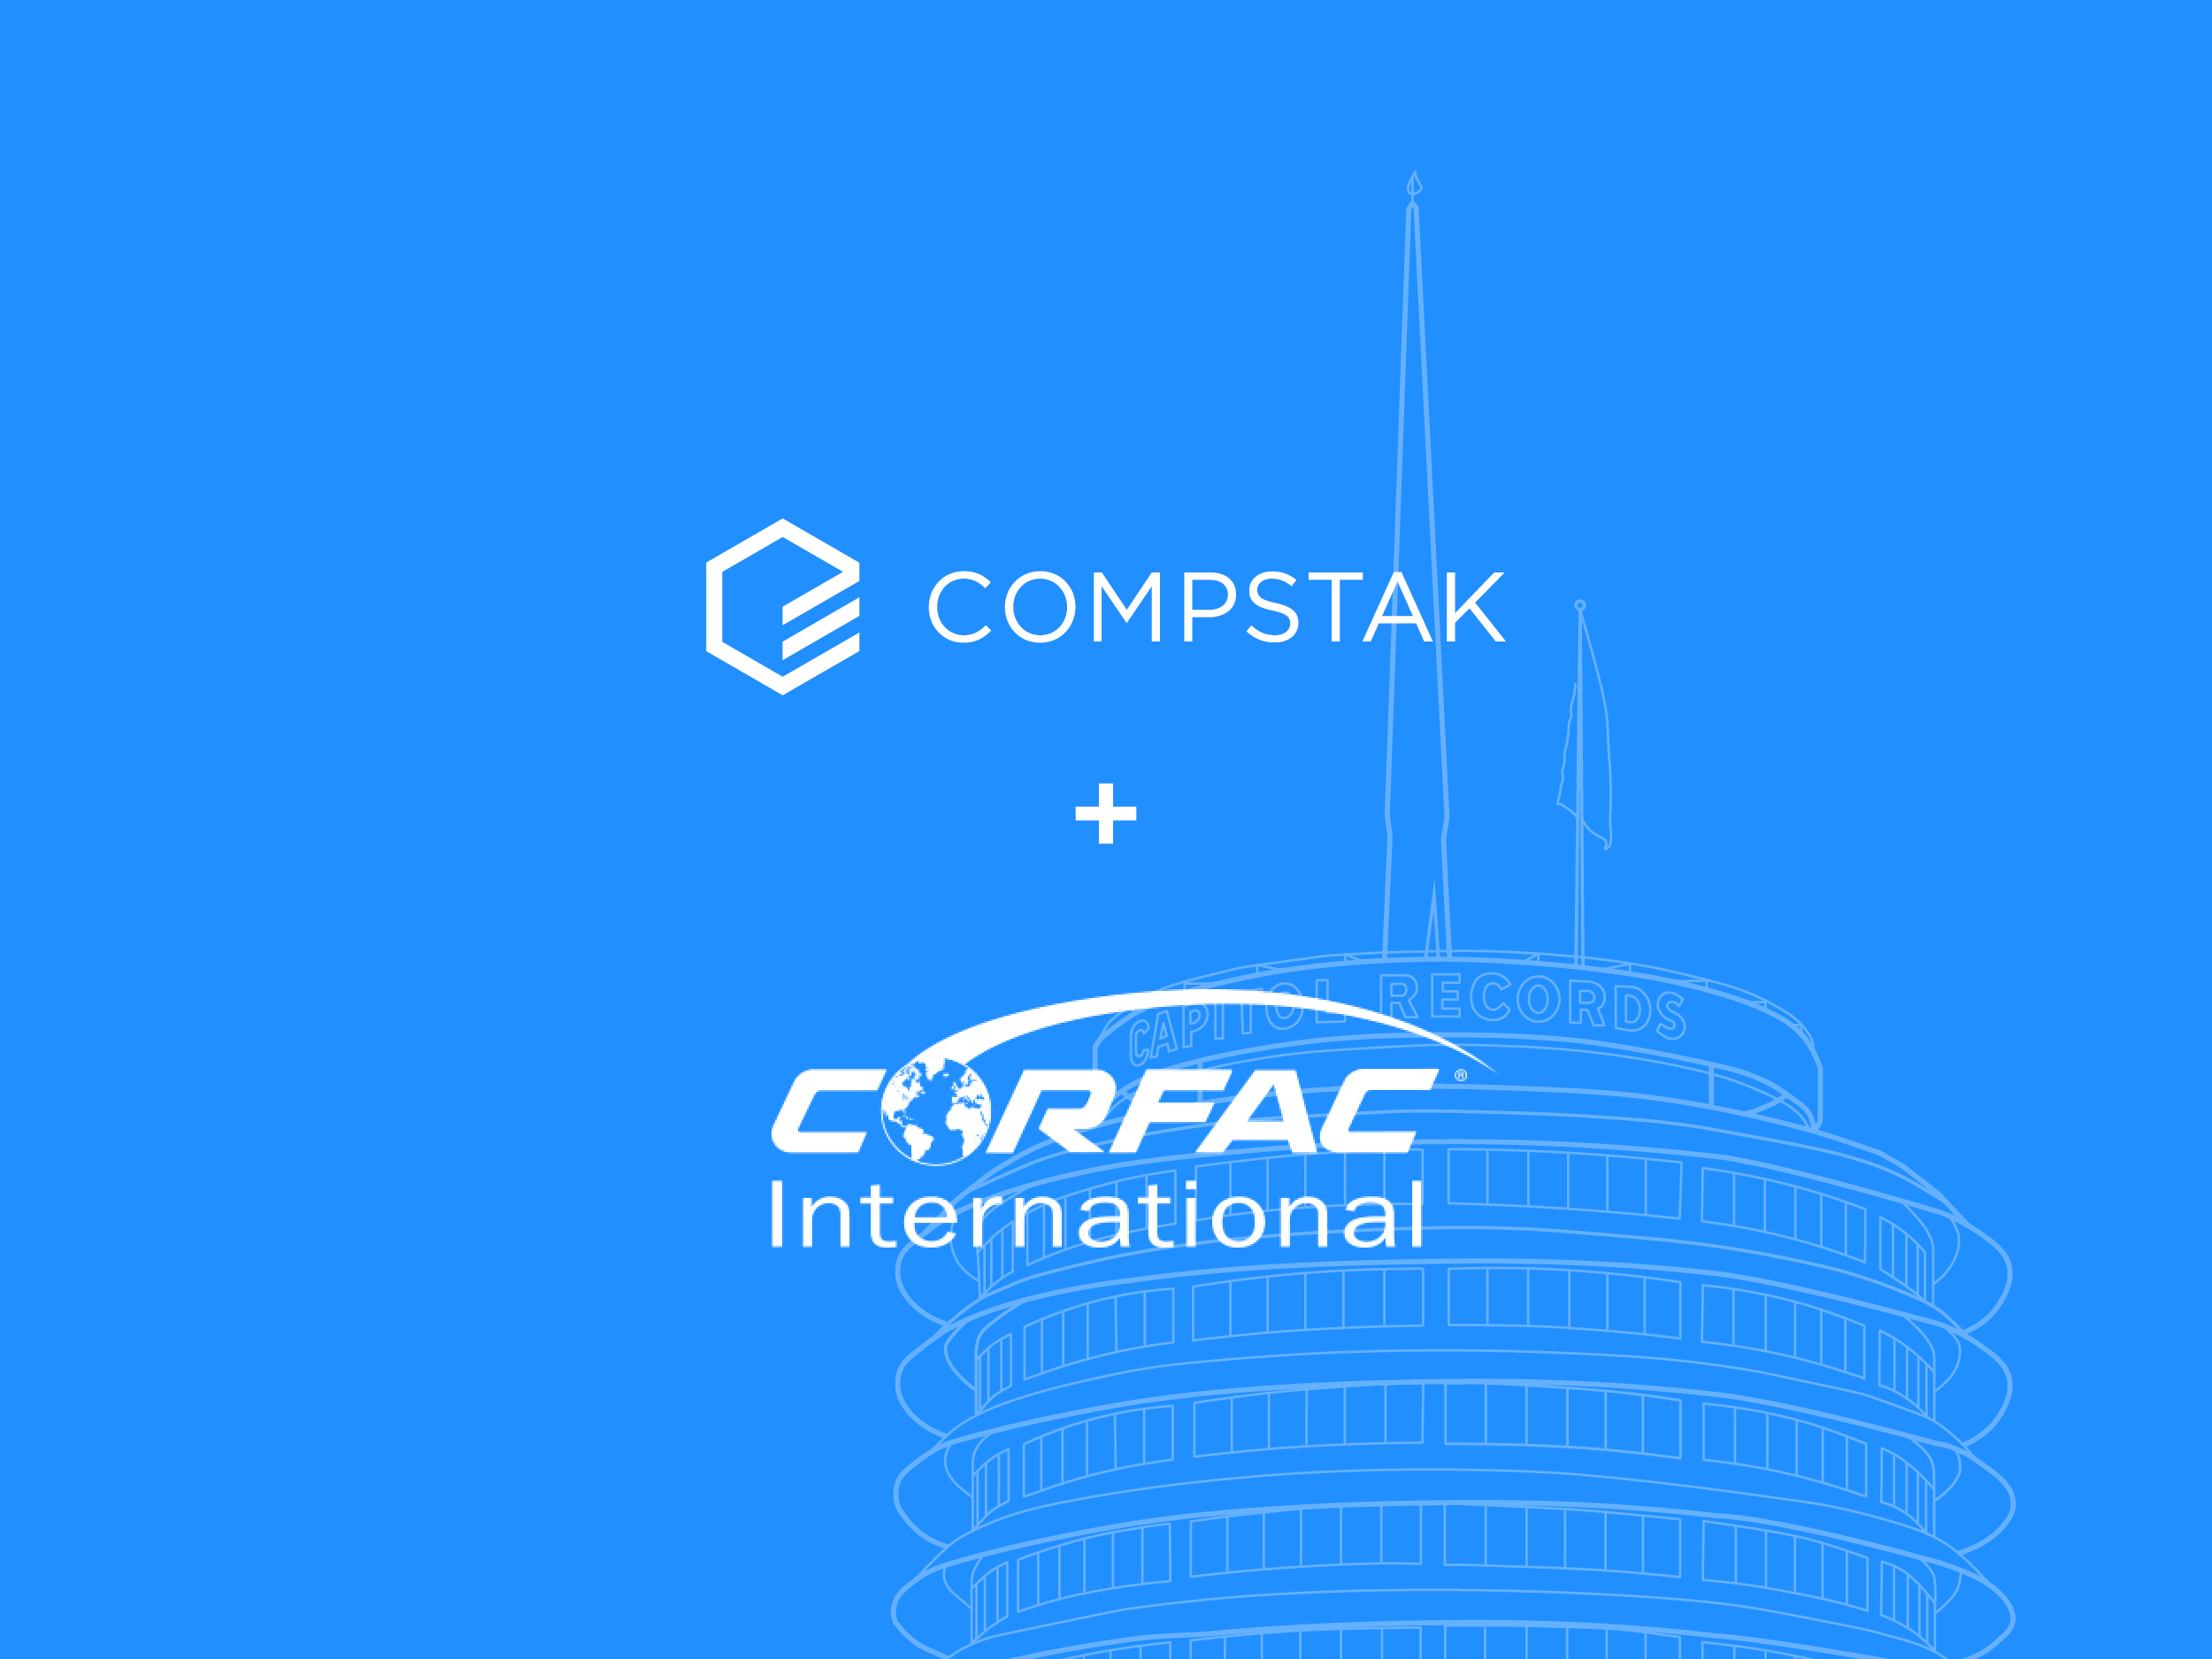 Compstack